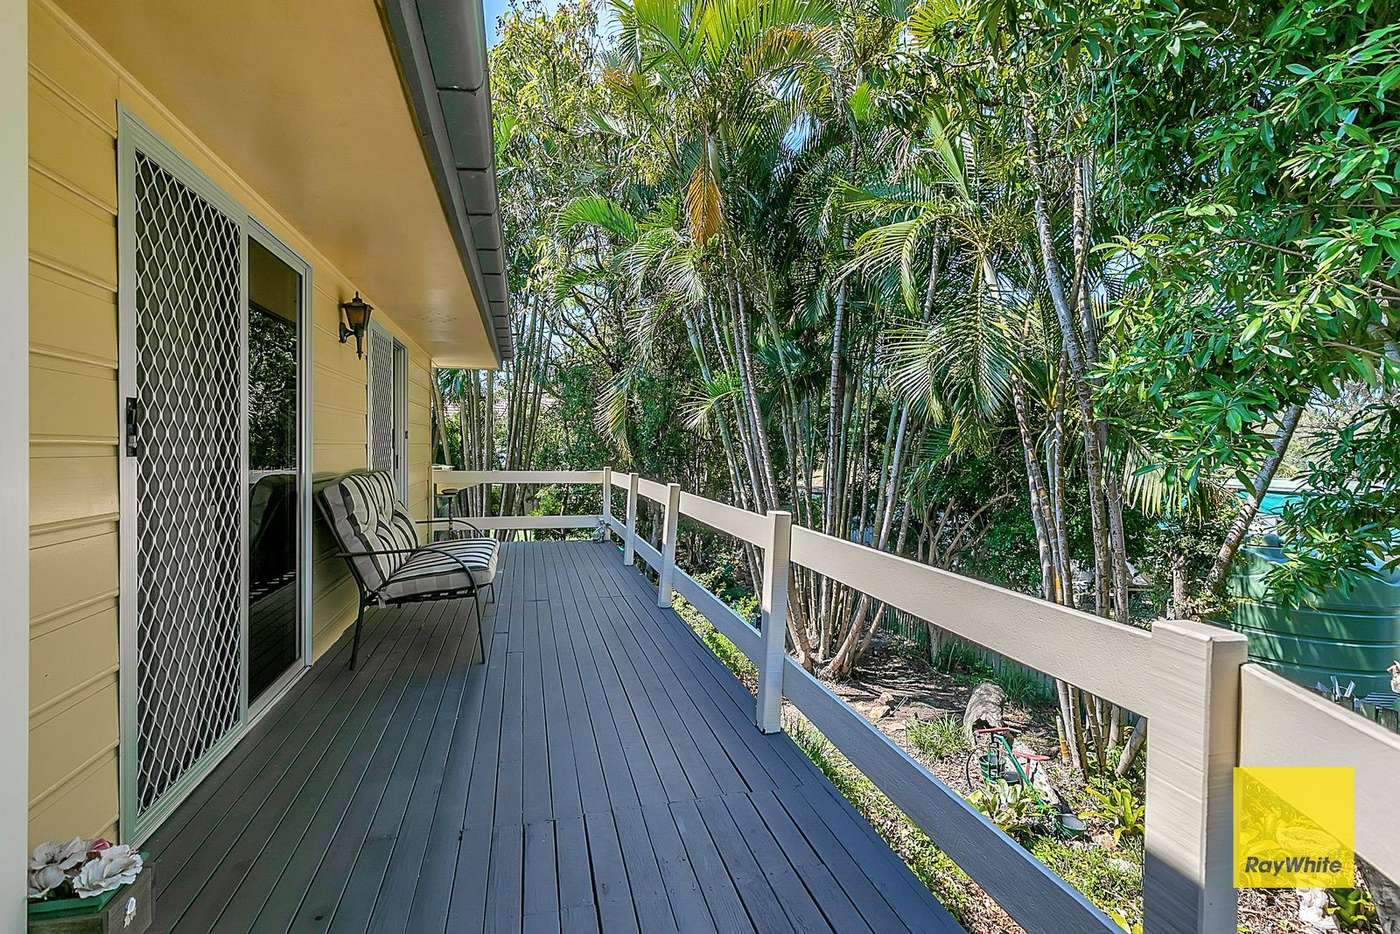 Main view of Homely house listing, 56 Sallows Street, Alexandra Hills, QLD 4161